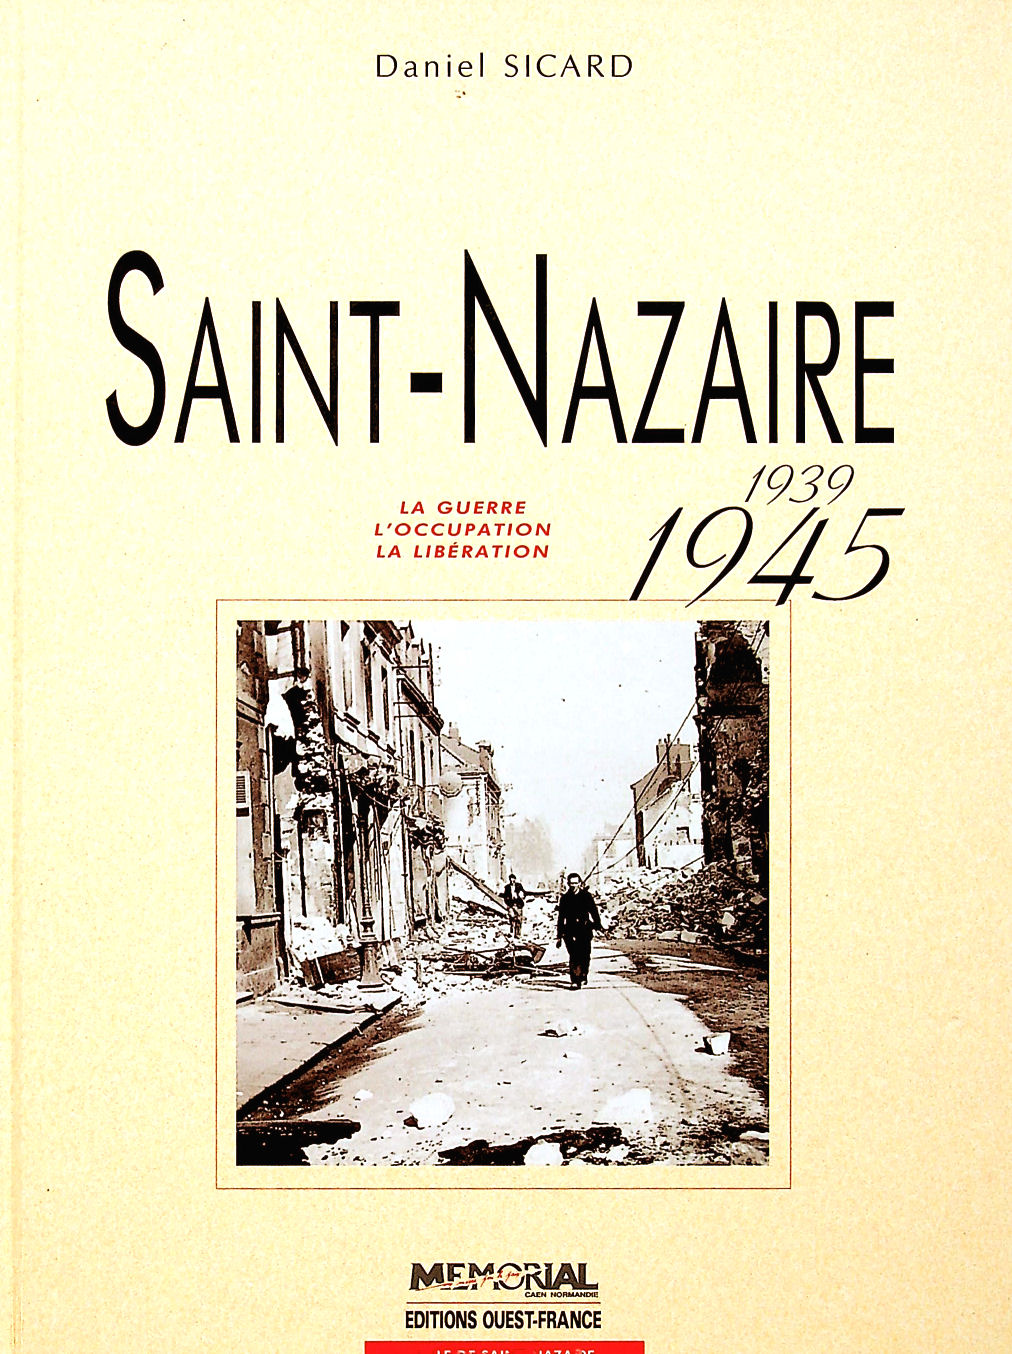 Image for Saint-Nazaire, 1939-1945: La guerre, l'occupation, la liberation (Collection Une ville pendant la guerre)